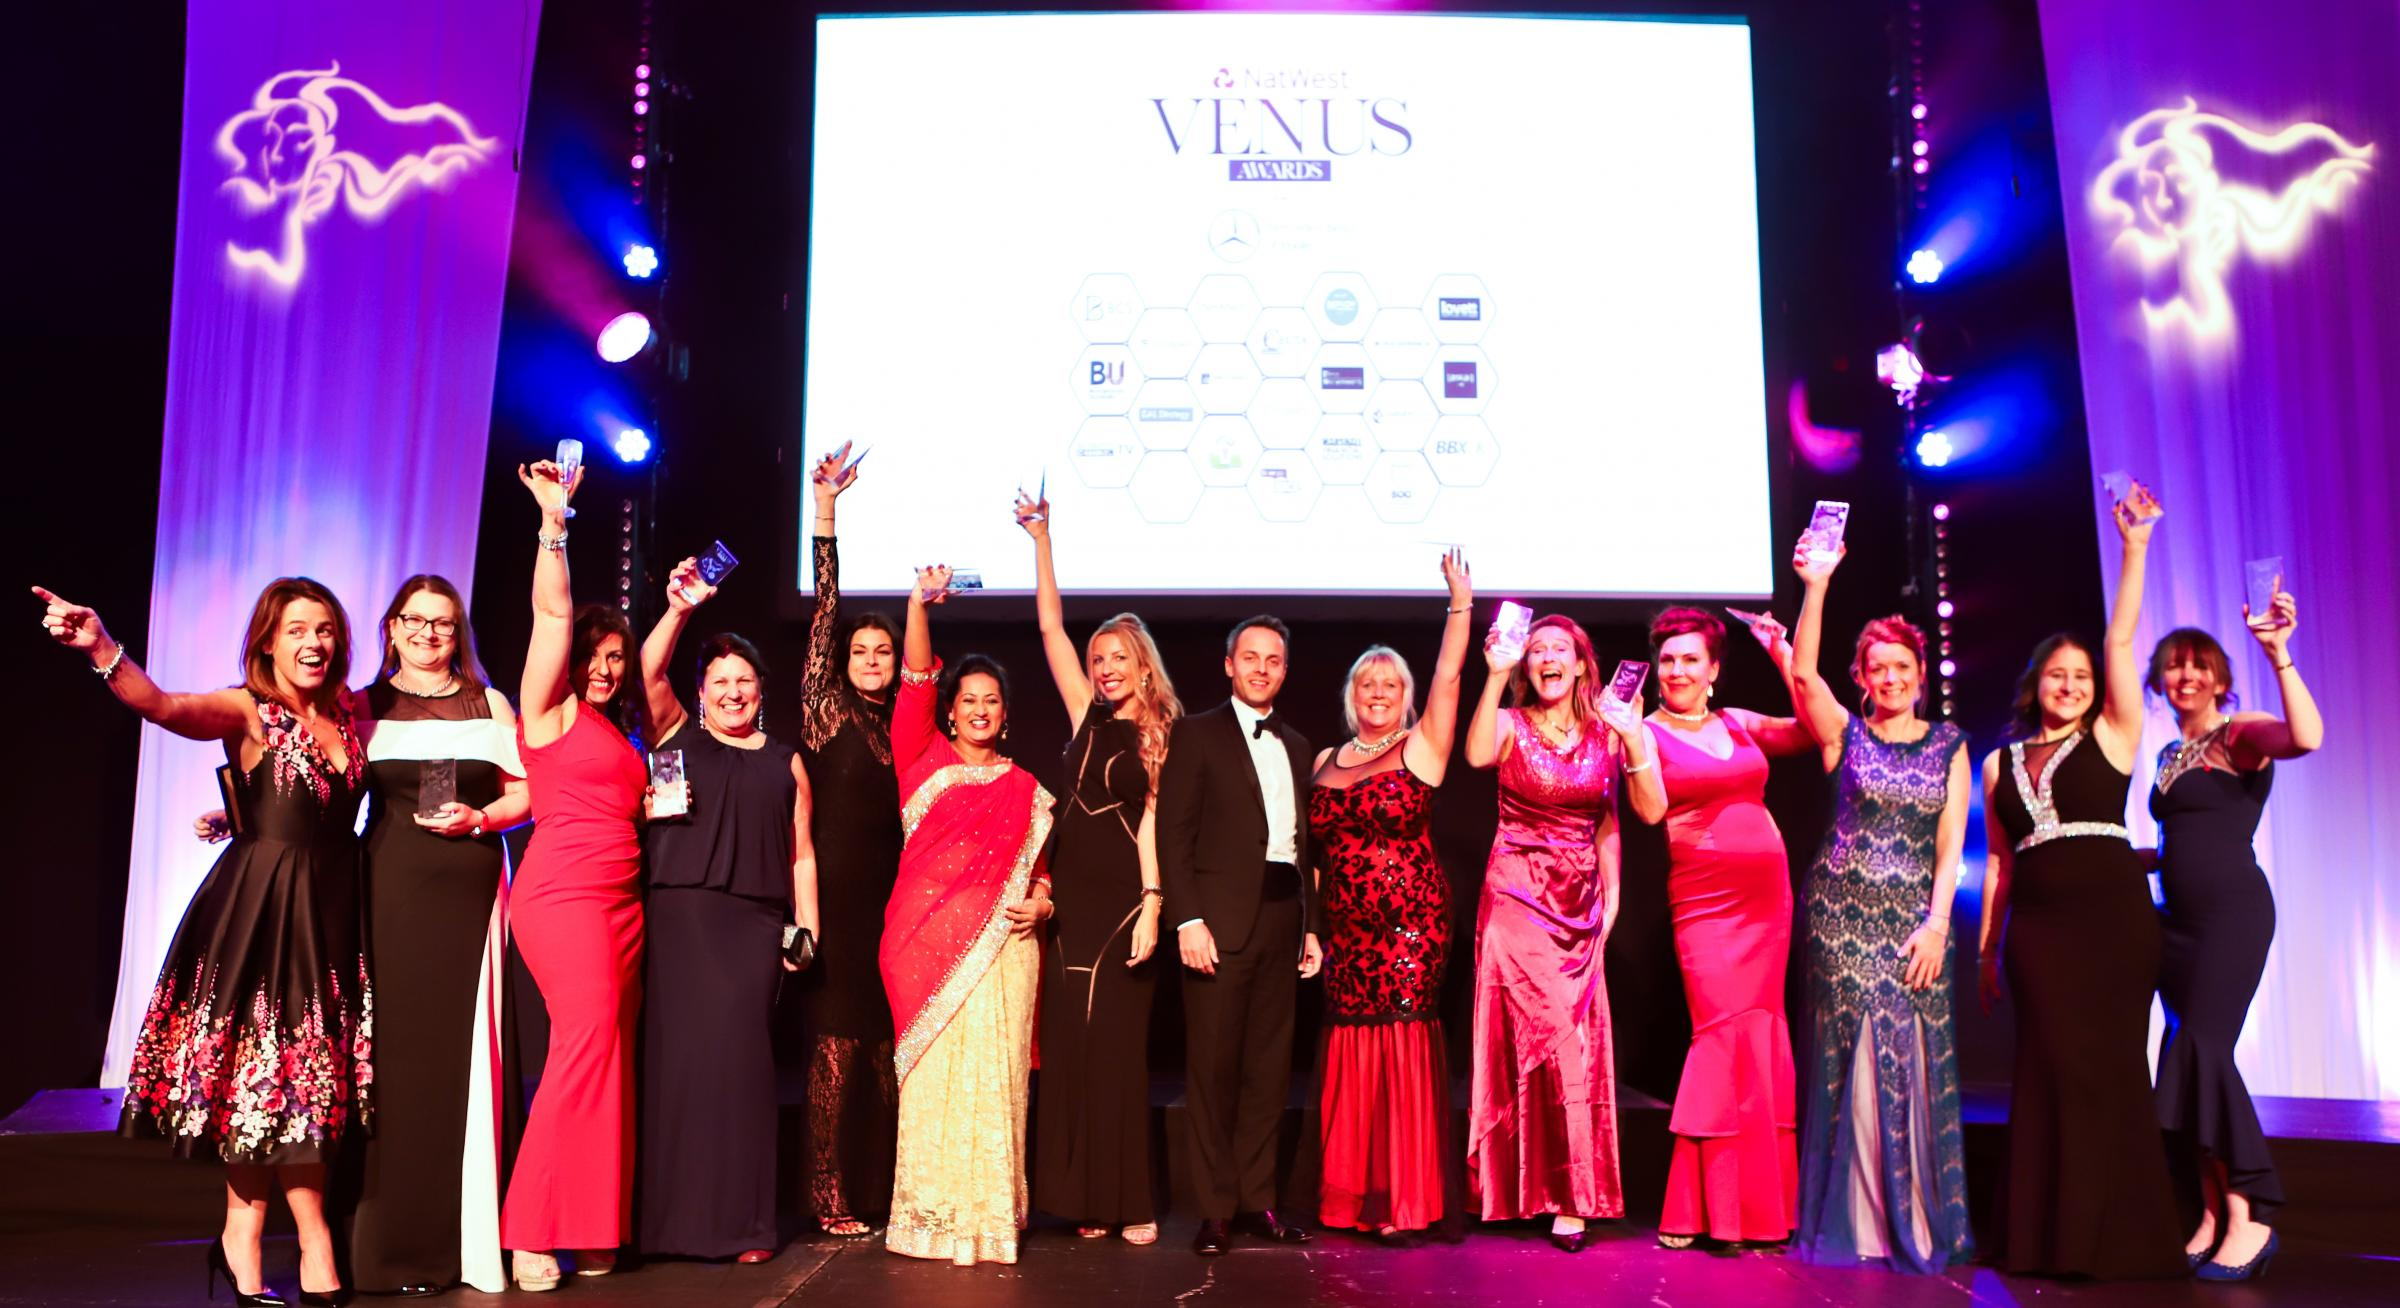 Wonderful women shortlisted in Thames Valley Venus Awards 2018